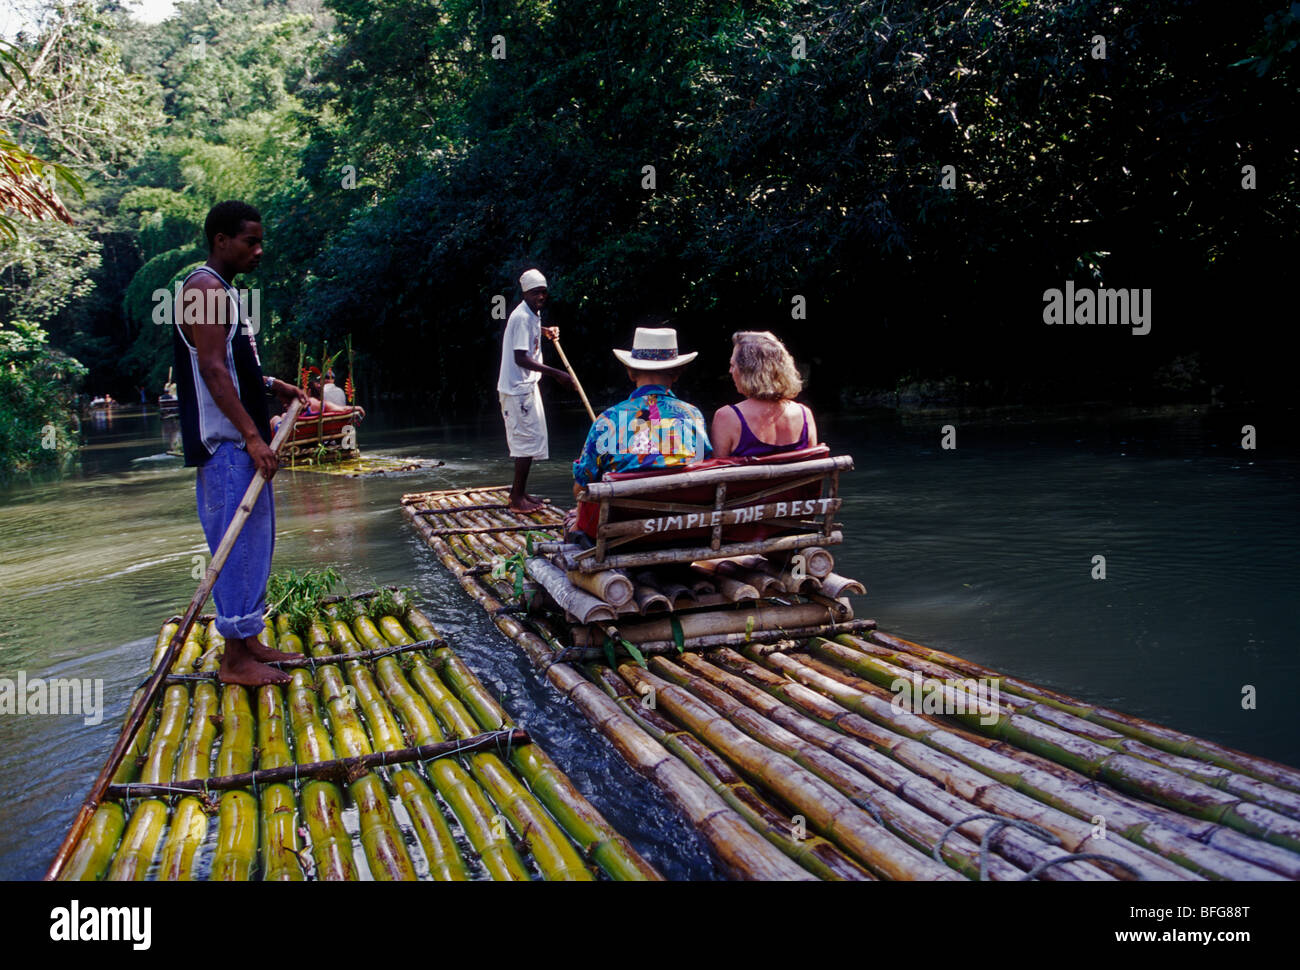 Jamaican man, adult man, tour guide, tourists, couple, bamboo raft, bamboo raft trip, The Great River, Great River, - Stock Image